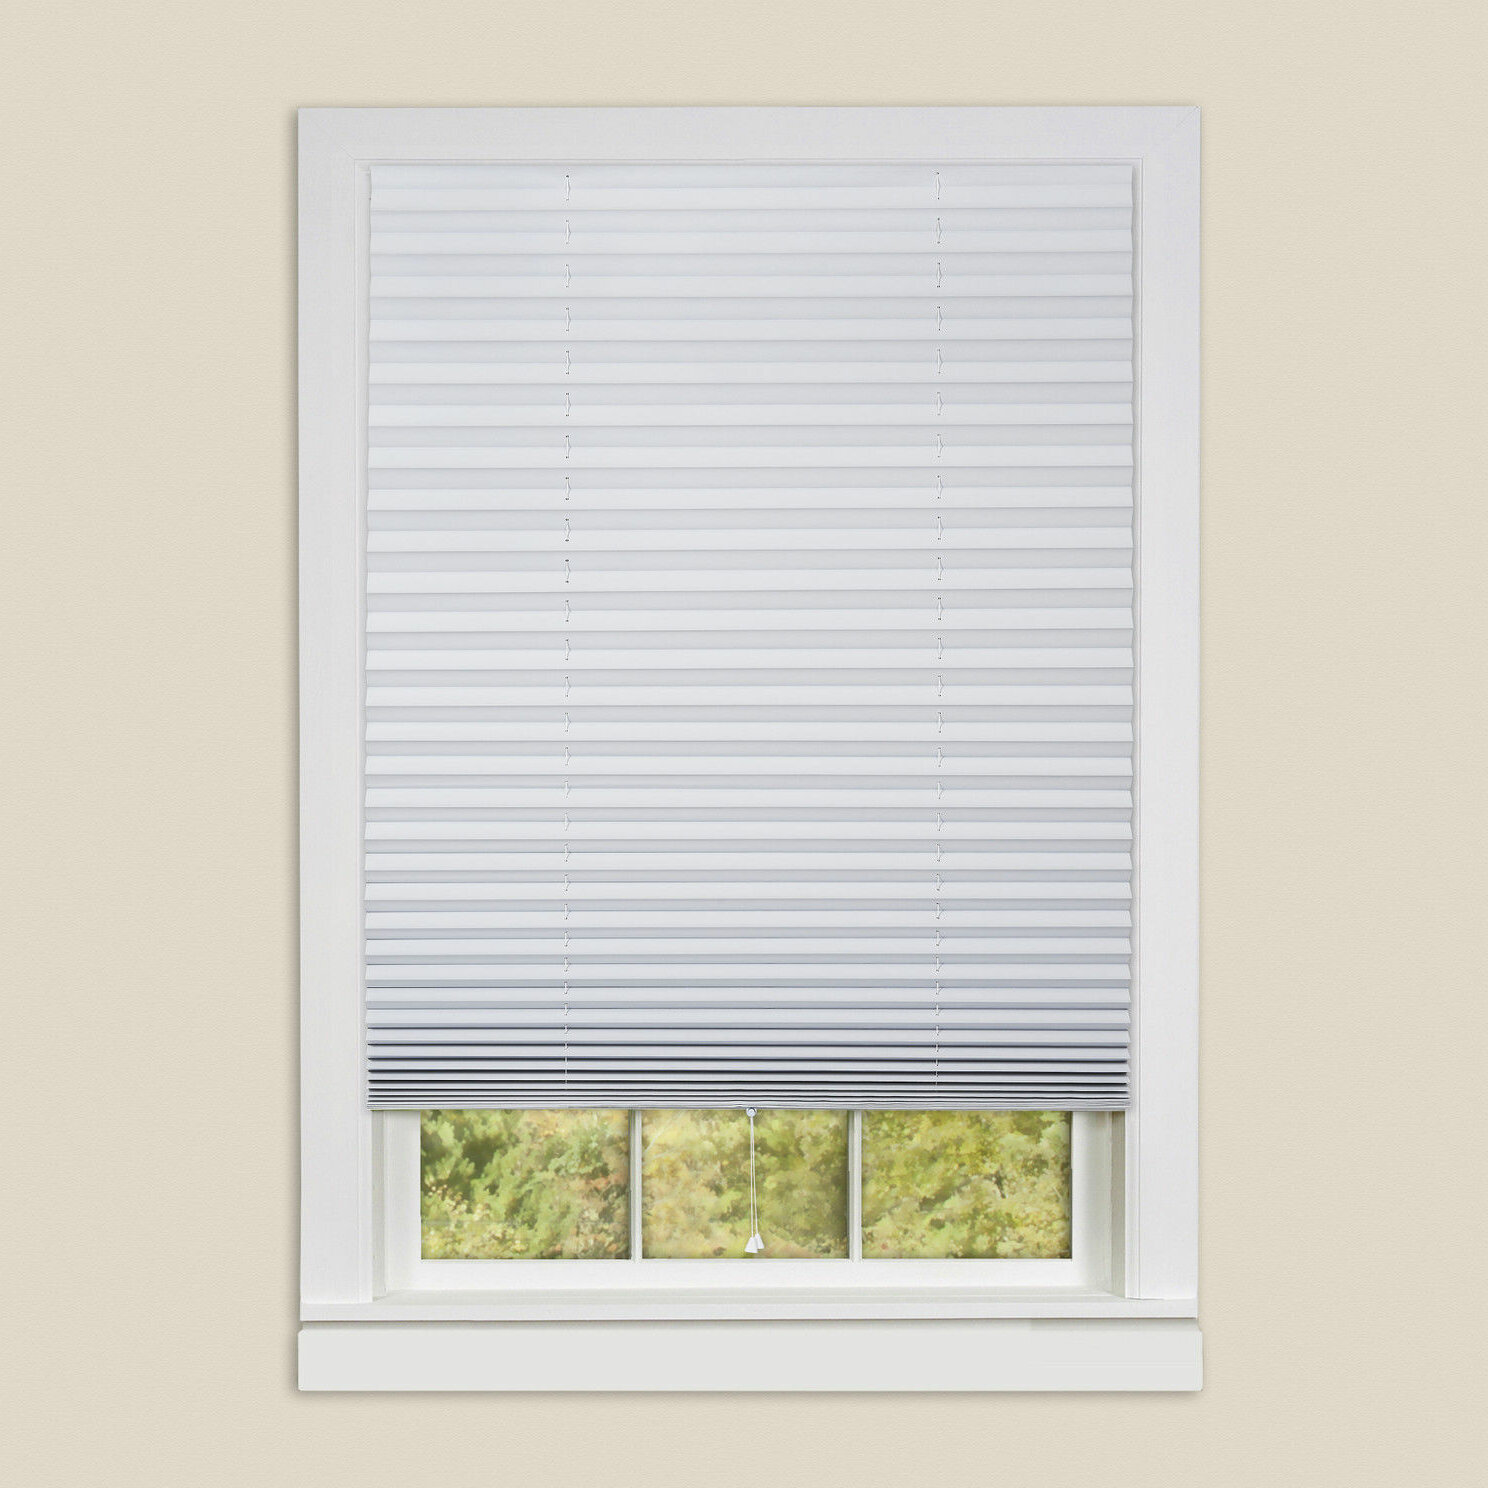 wood west blind window coast shutters shades blinds paints vinyl inc faux outlet and